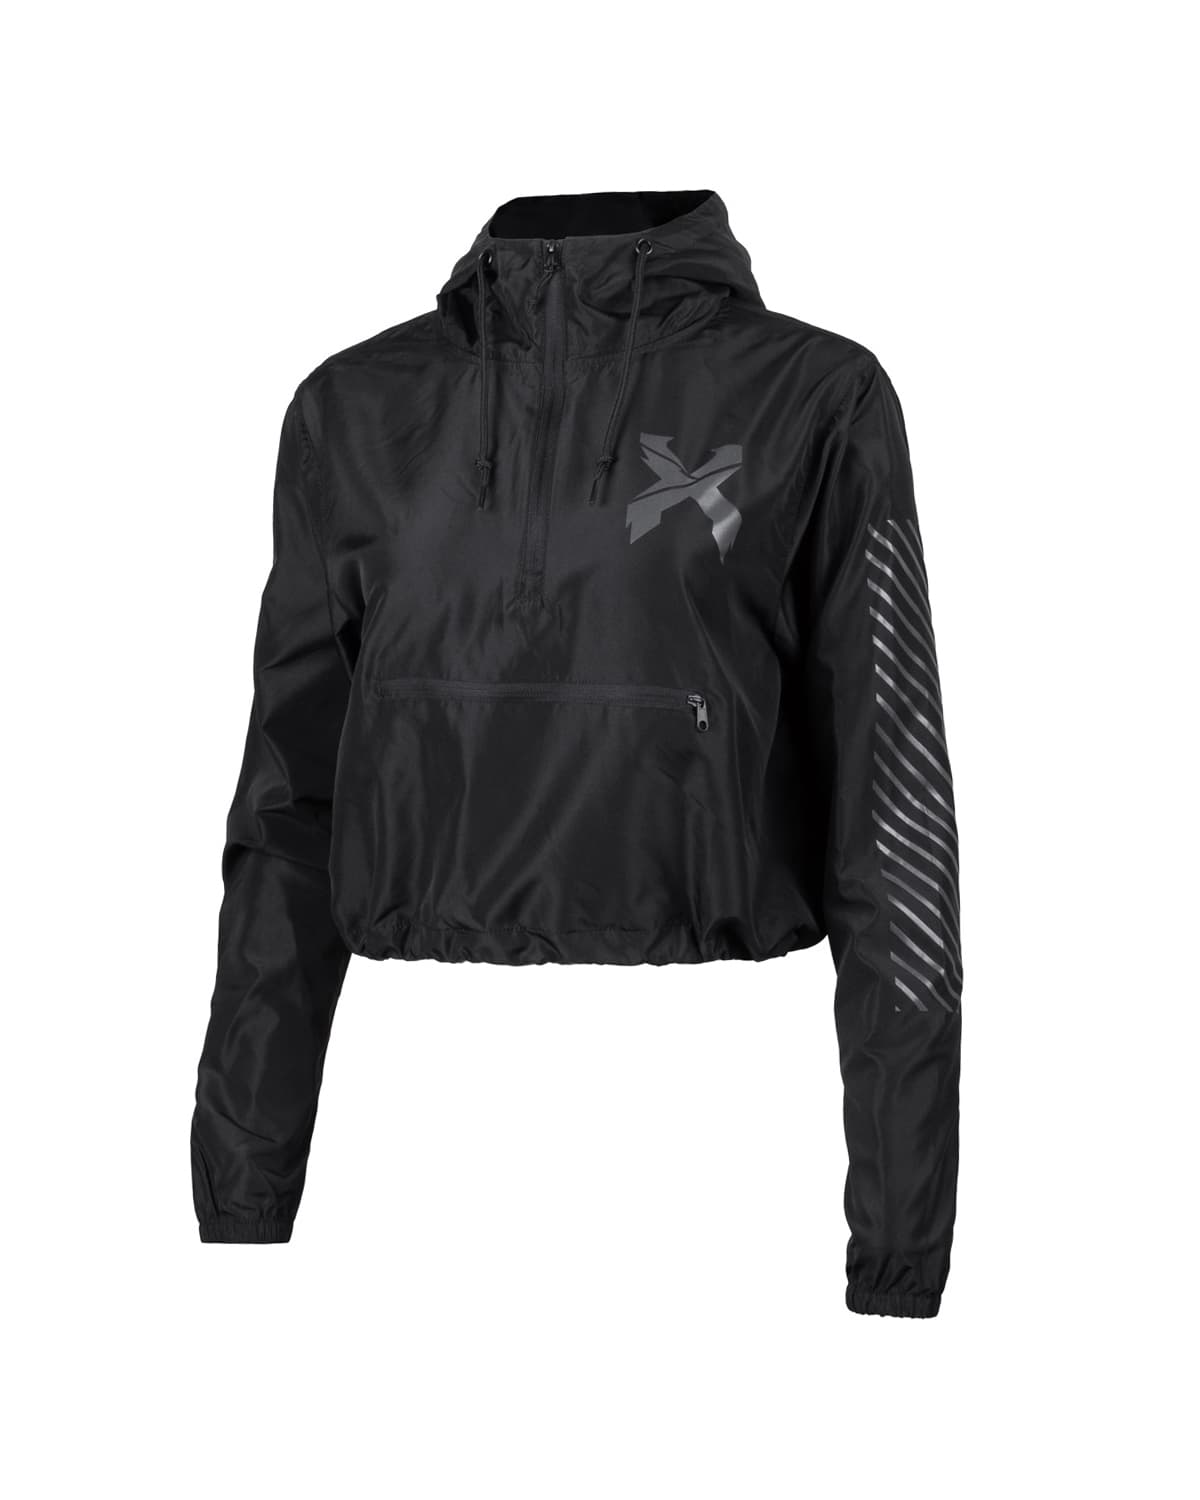 Excision Women's 'Sliced' Logo Reflective Lightweight Crop Anorak Jacket